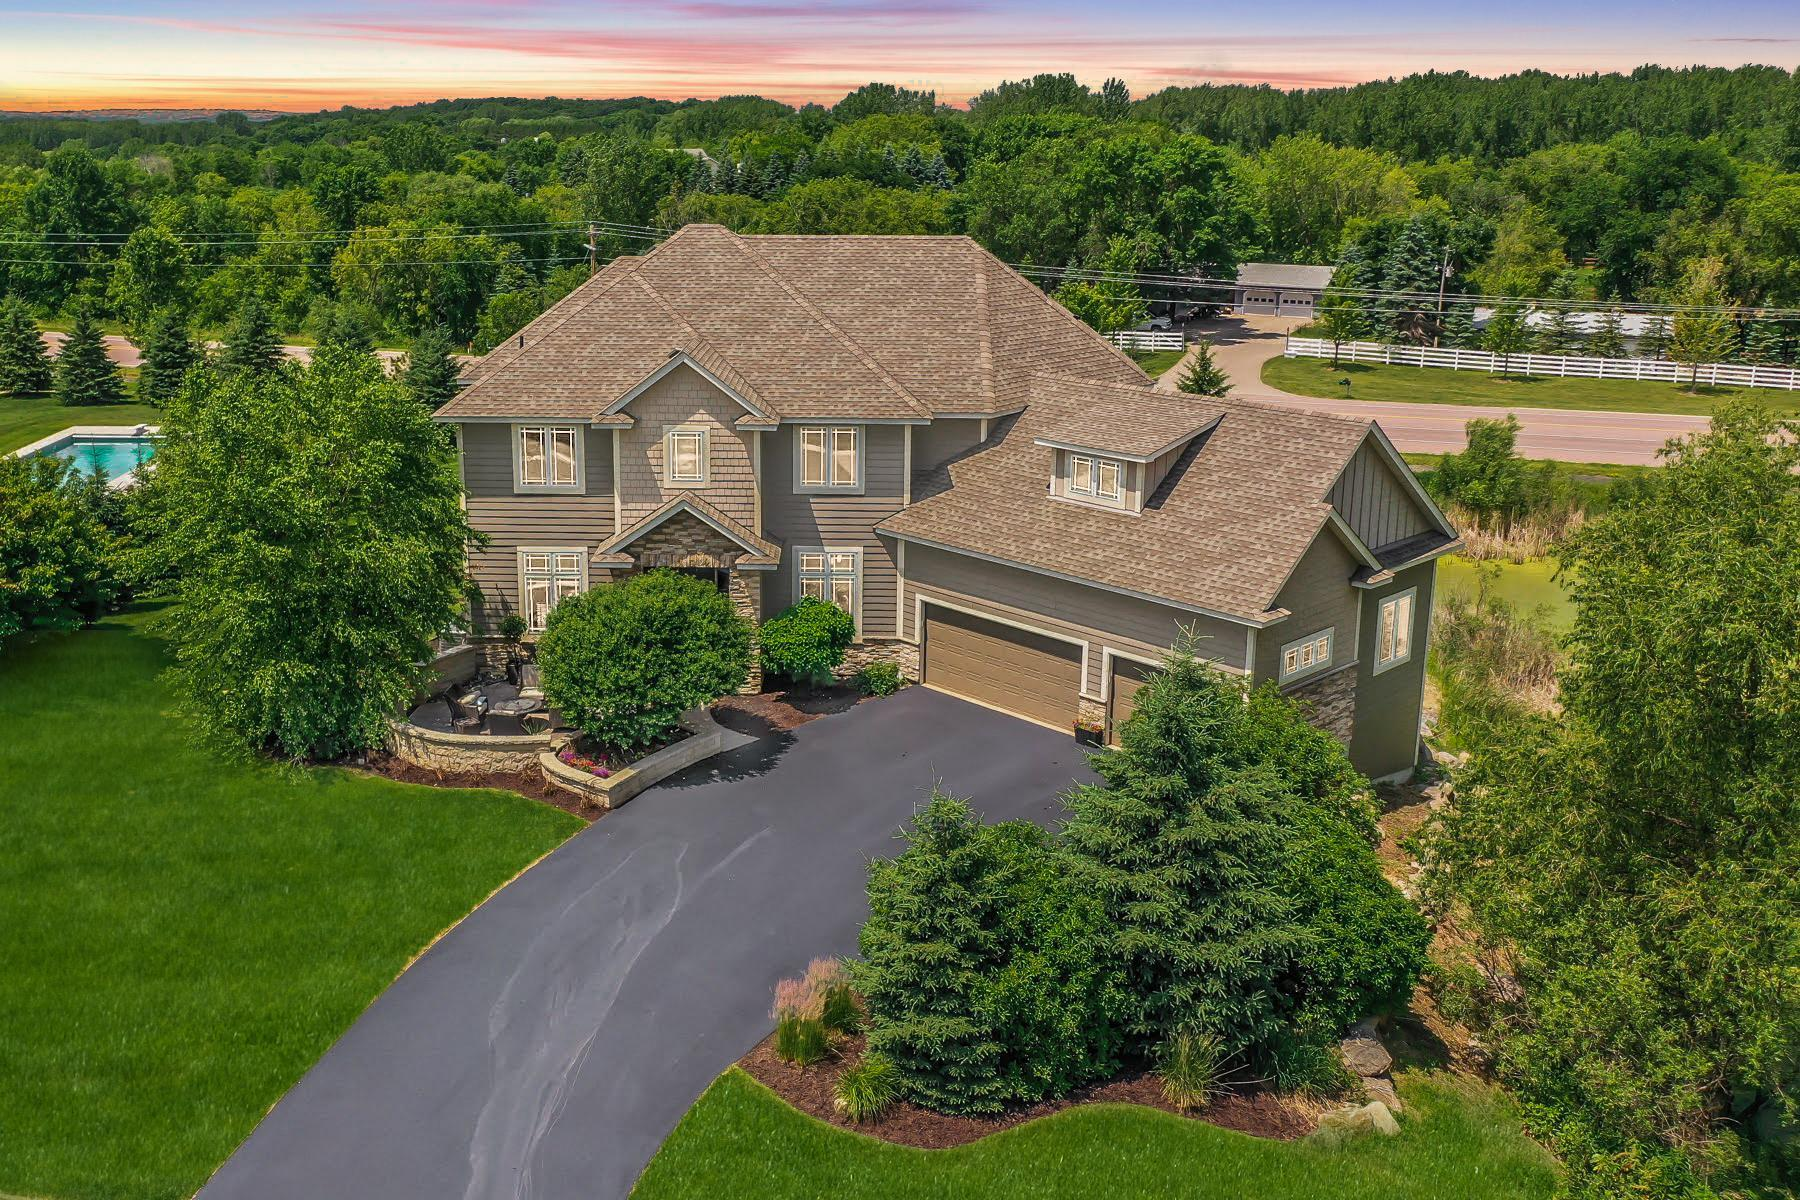 8755 Canter Lane Property Photo - Credit River Twp, MN real estate listing